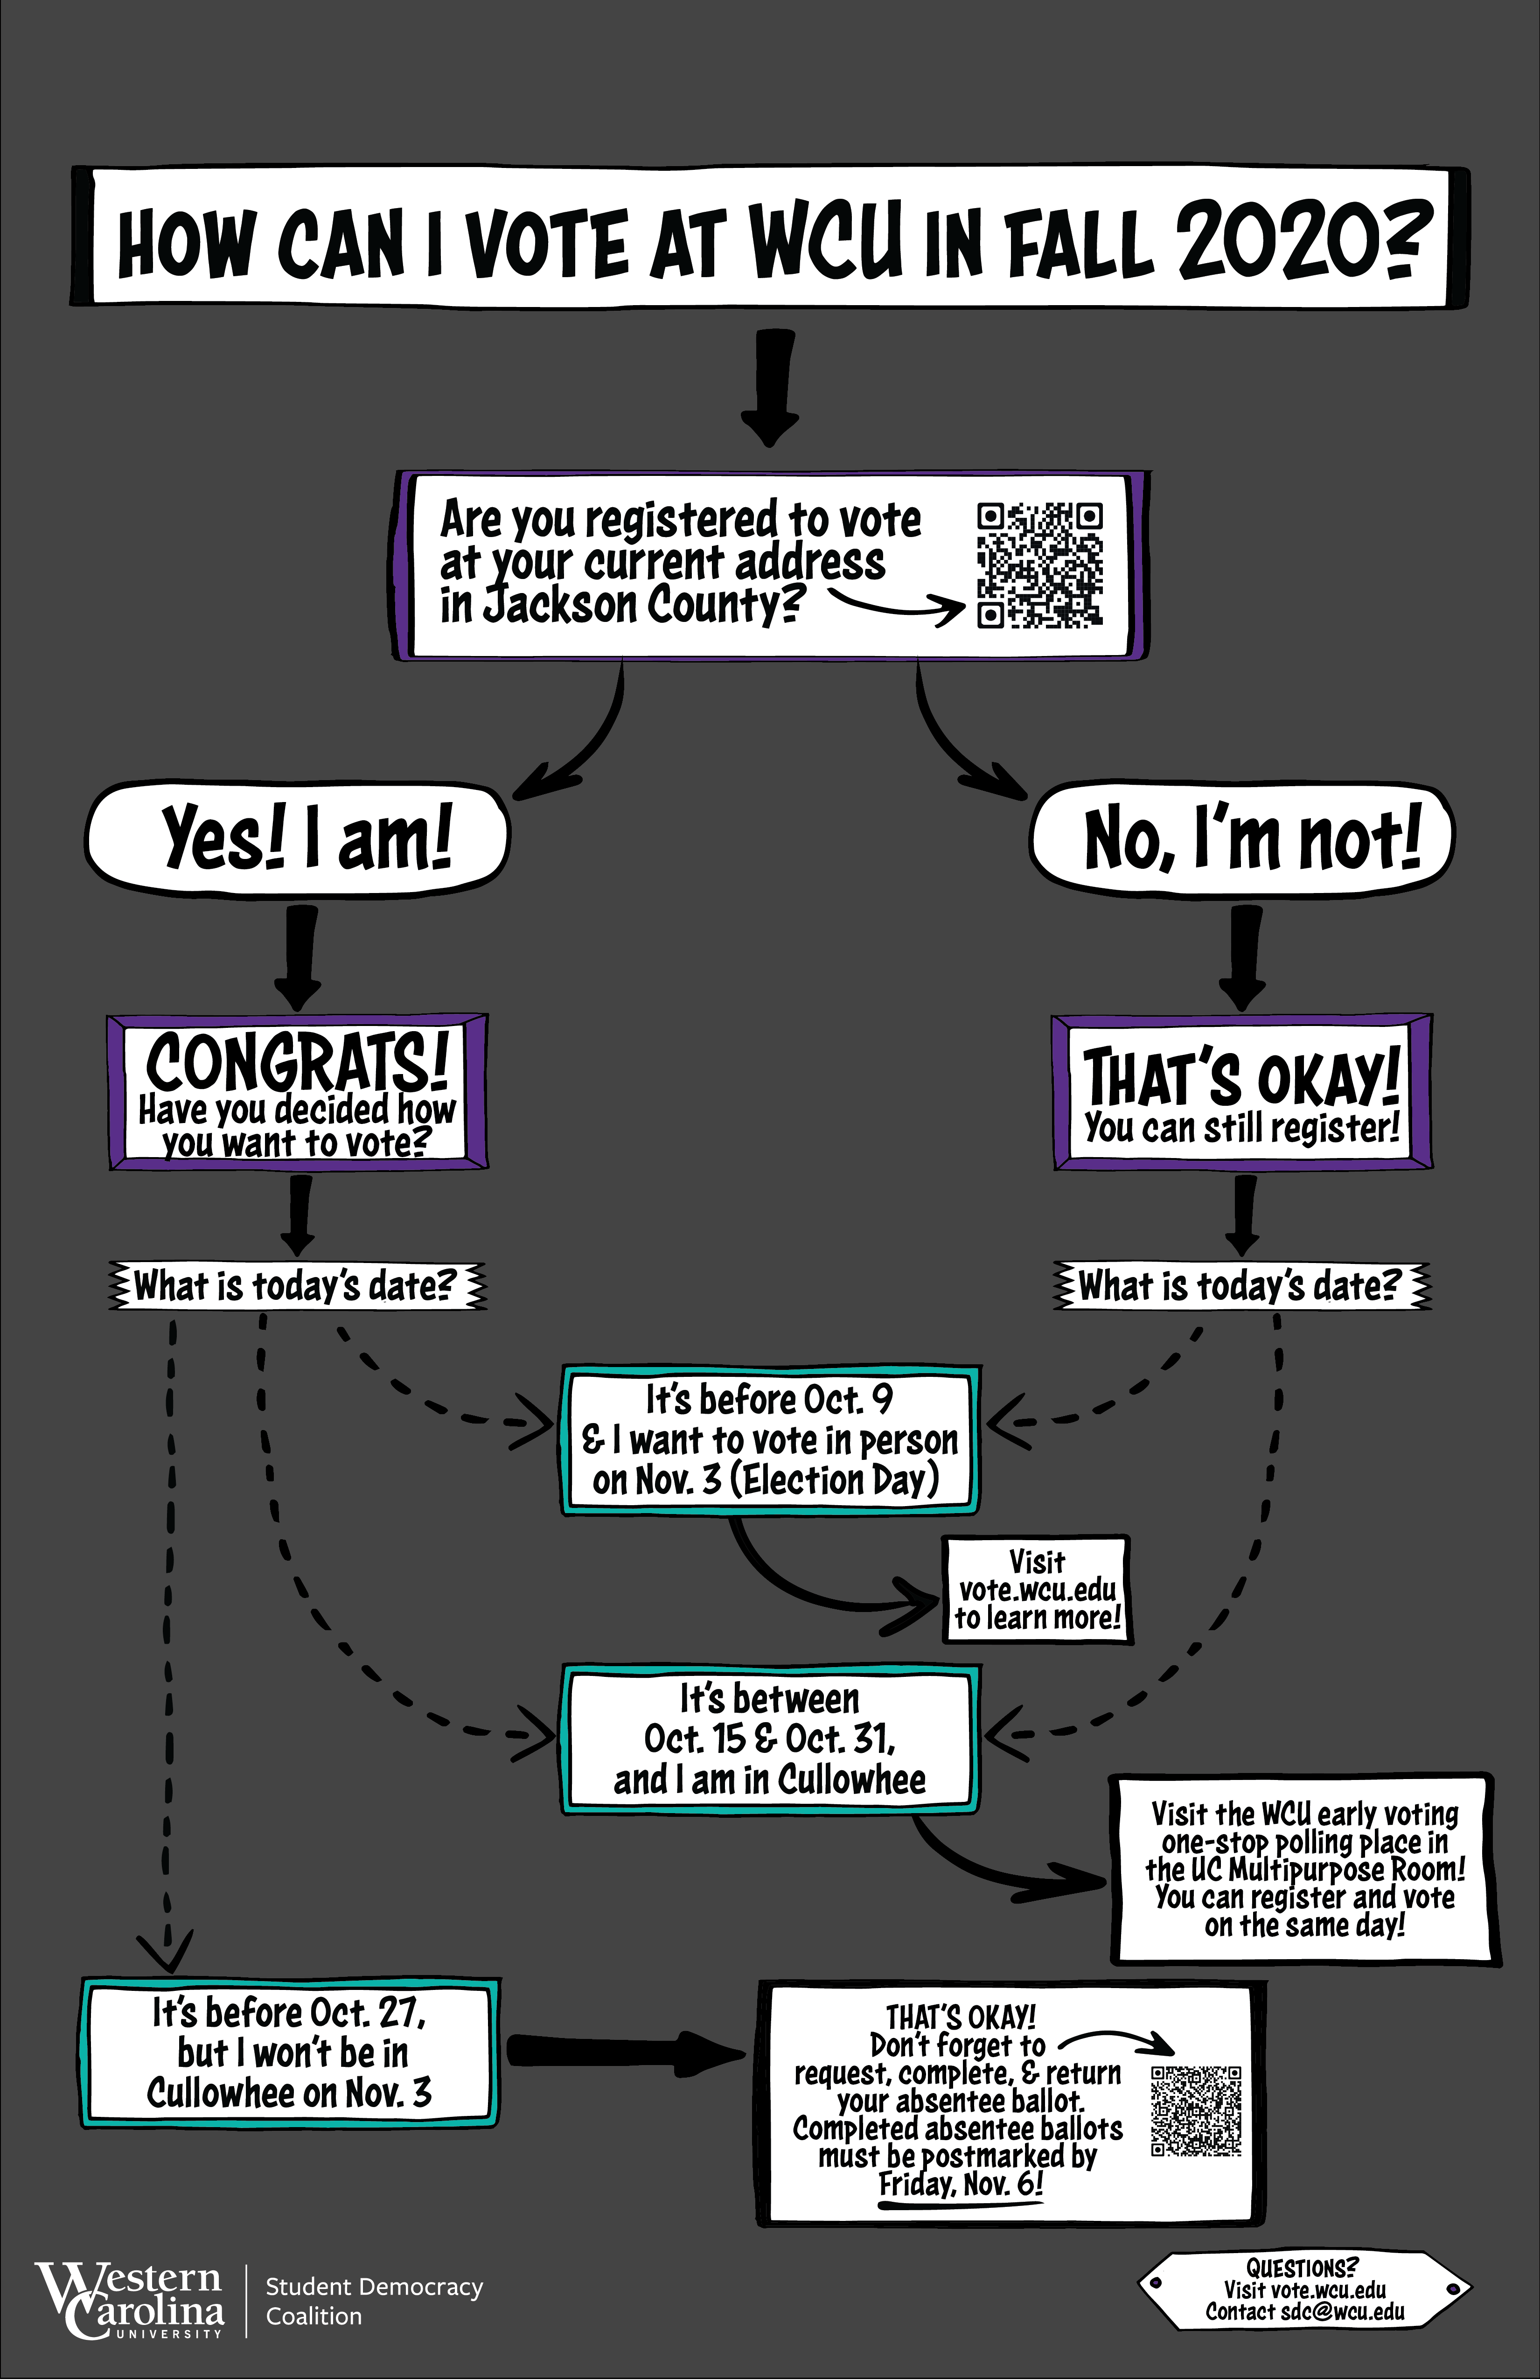 Flowchart detailing how WCU students can vote in the 2020 elections on campus